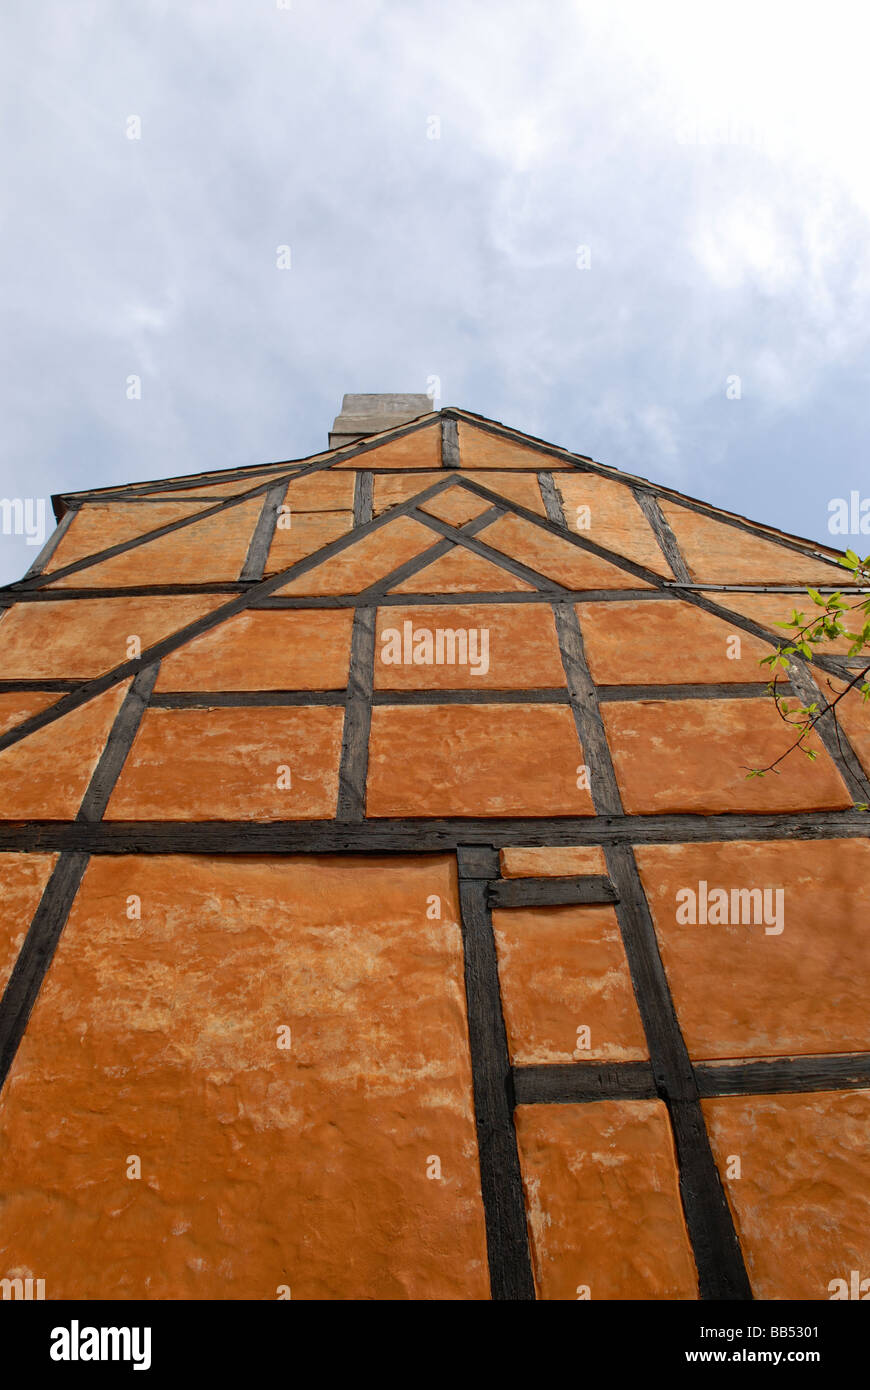 HALF-TIMBERED GABLE - Stock Image